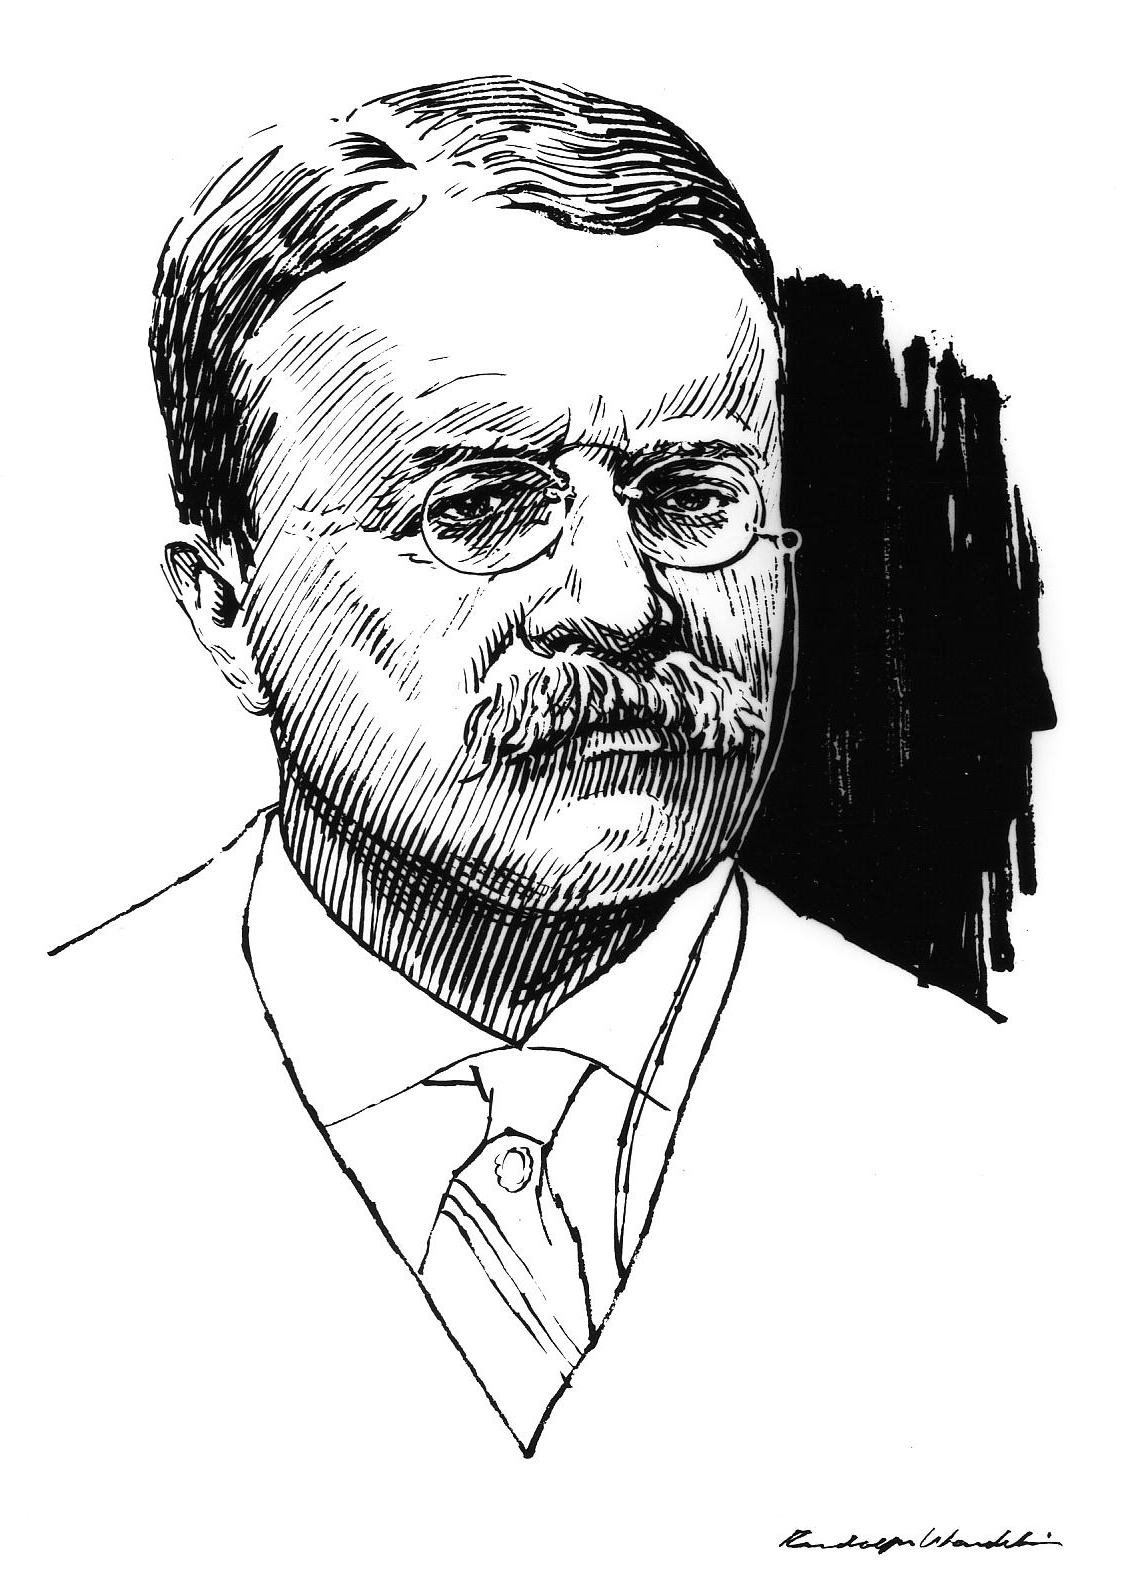 Sketch of Theodore Roosevelt, by Rudy Wendelin